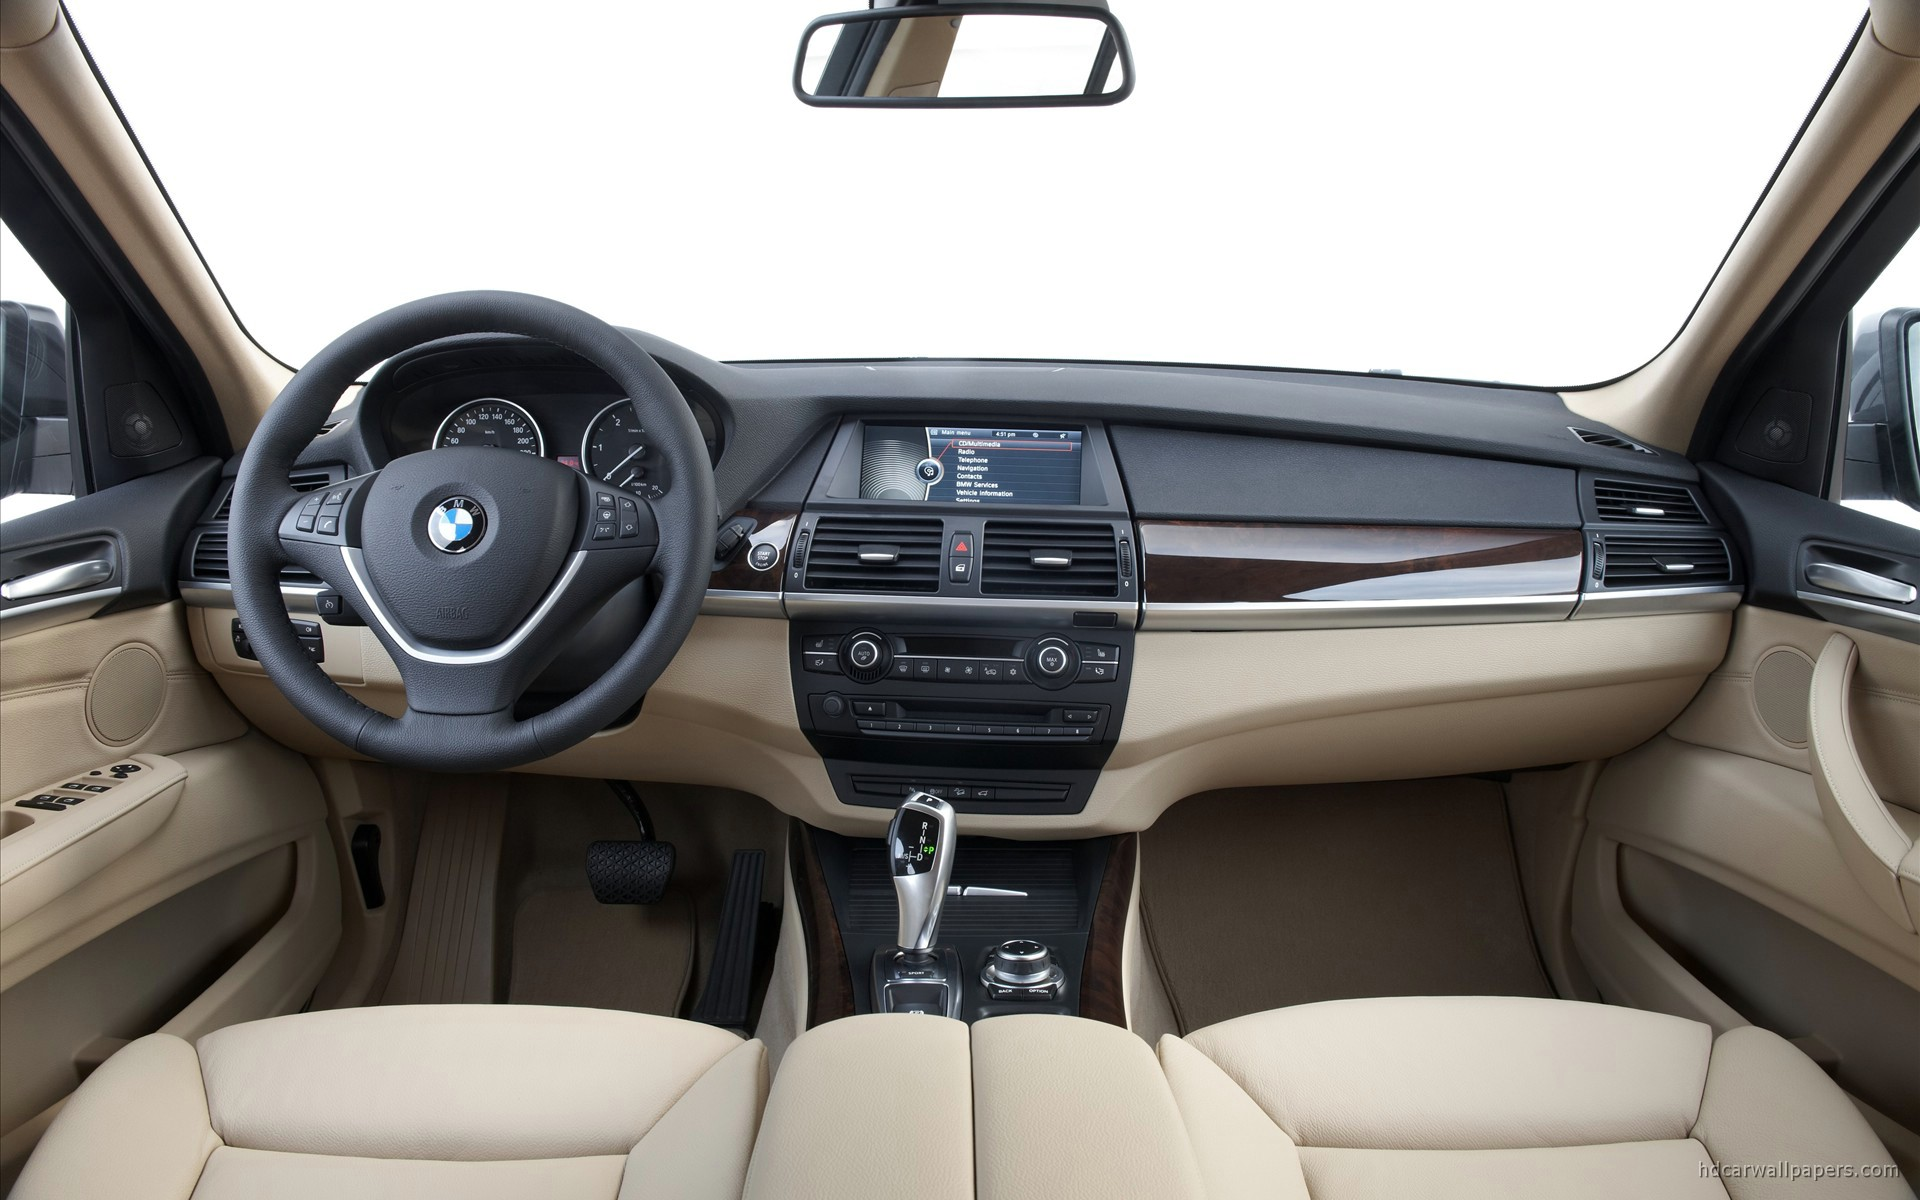 2011 Bmw X5 Interior Wallpaper Hd Car Wallpapers Id 303